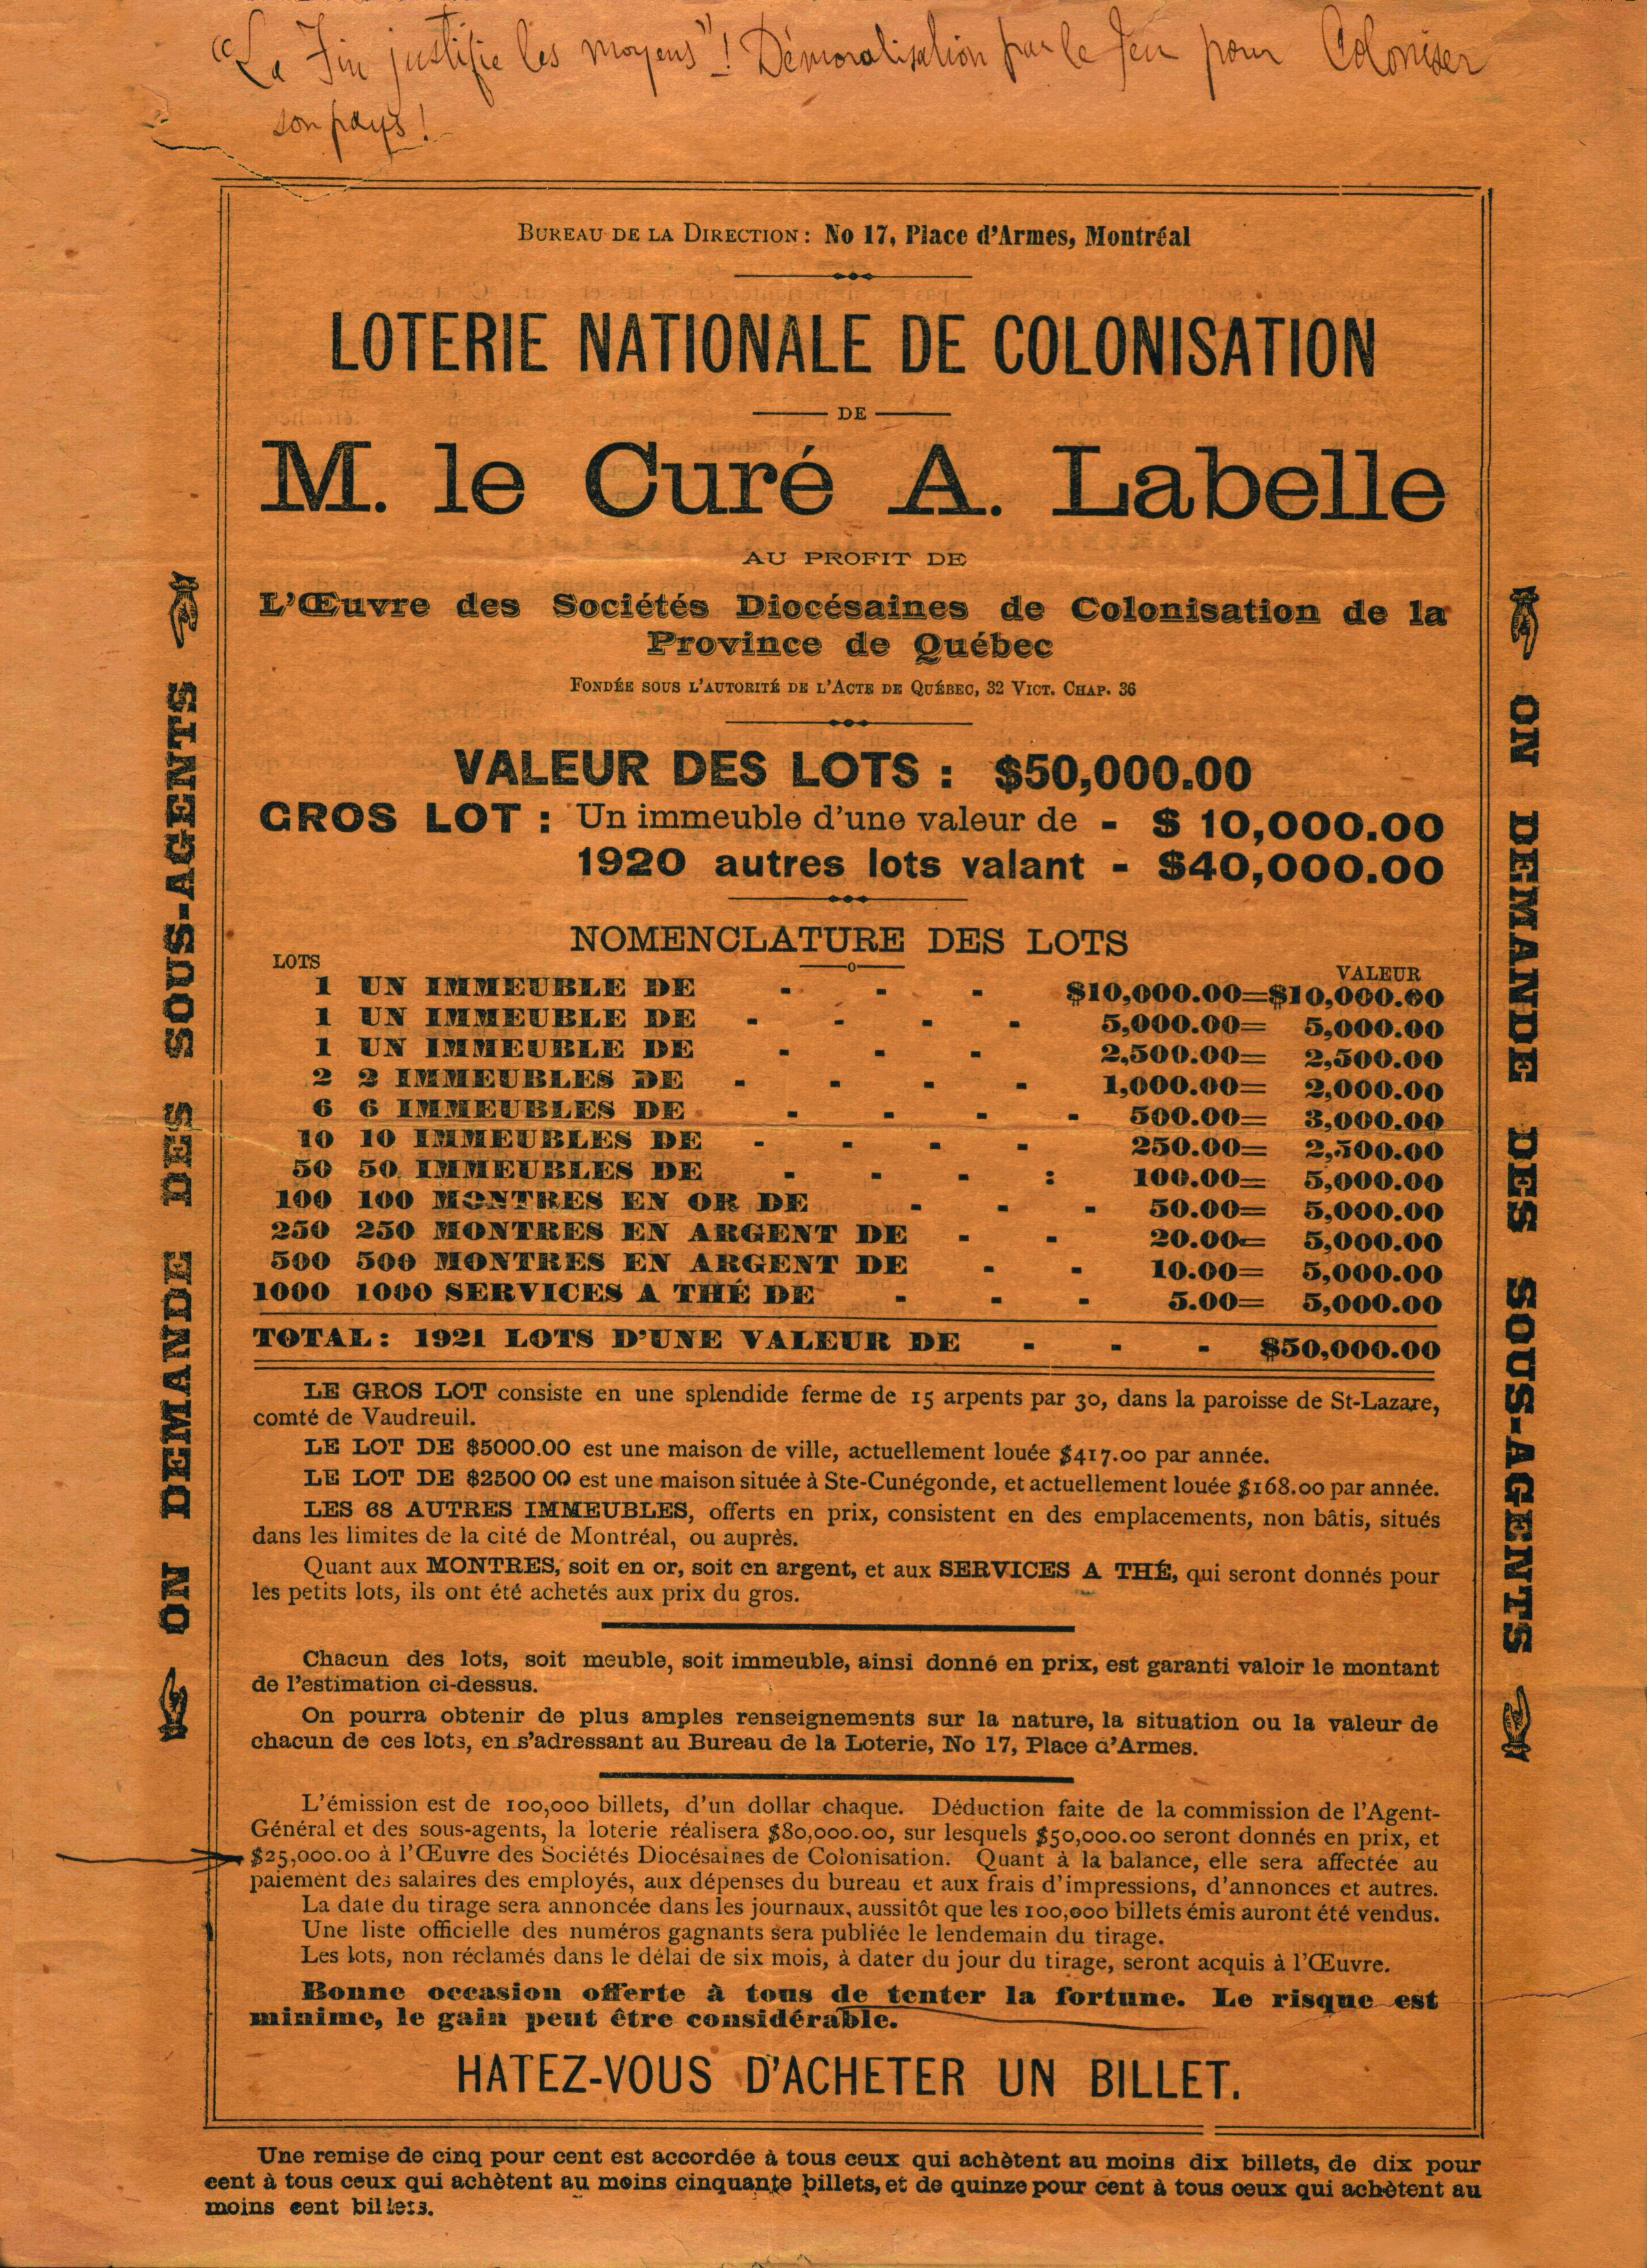 "An advertising poster printed in black ink on orange-coloured paper. The title is ""Loterie nationale de colonisation de M. le Curé A. Labelle."" A variety of information appears beneath the title, including the value of prizes, the list and number of prizes, descriptions of the prizes, and a description of the lottery."